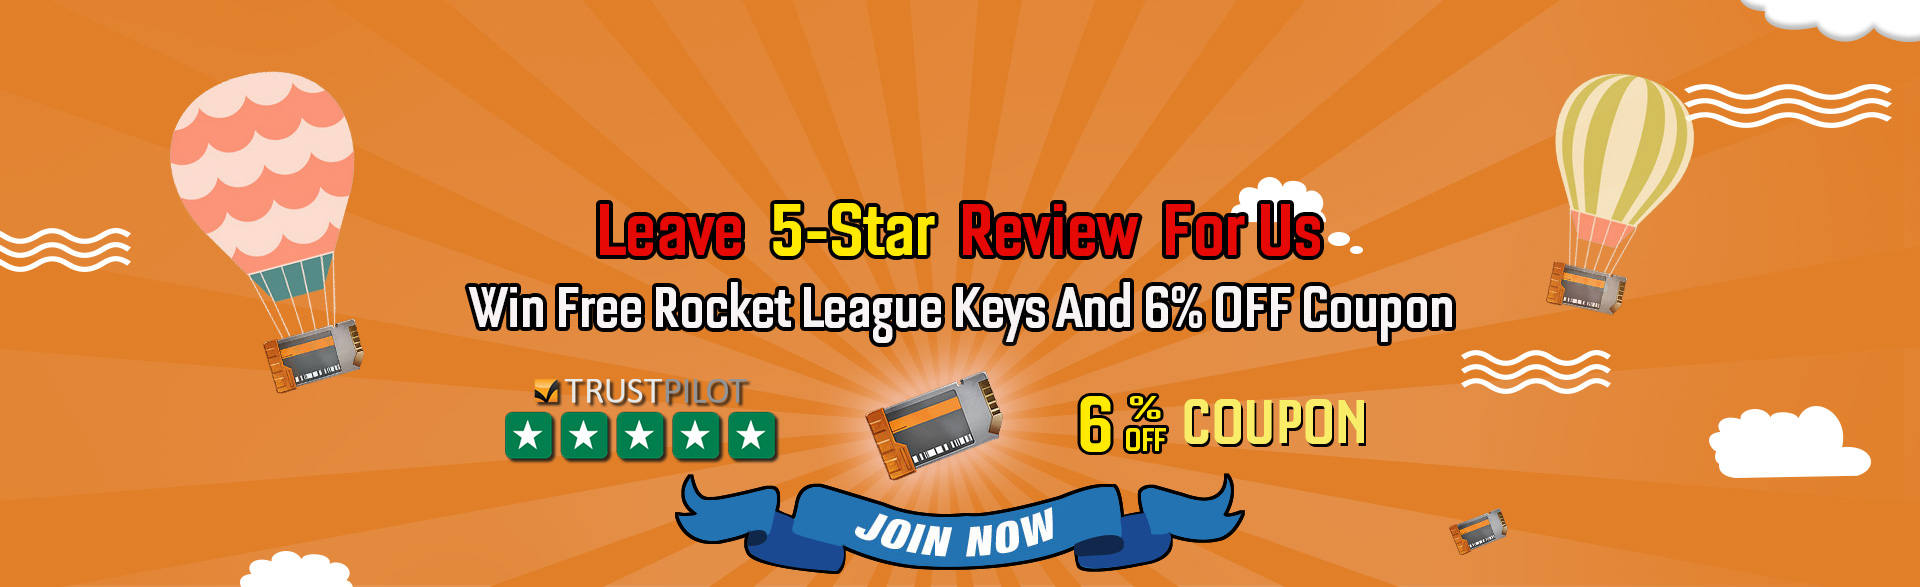 Leave 5-Star Reviews For Us To Get Free Rocket League Keys and 6% Off Coupon For Rocket League Items